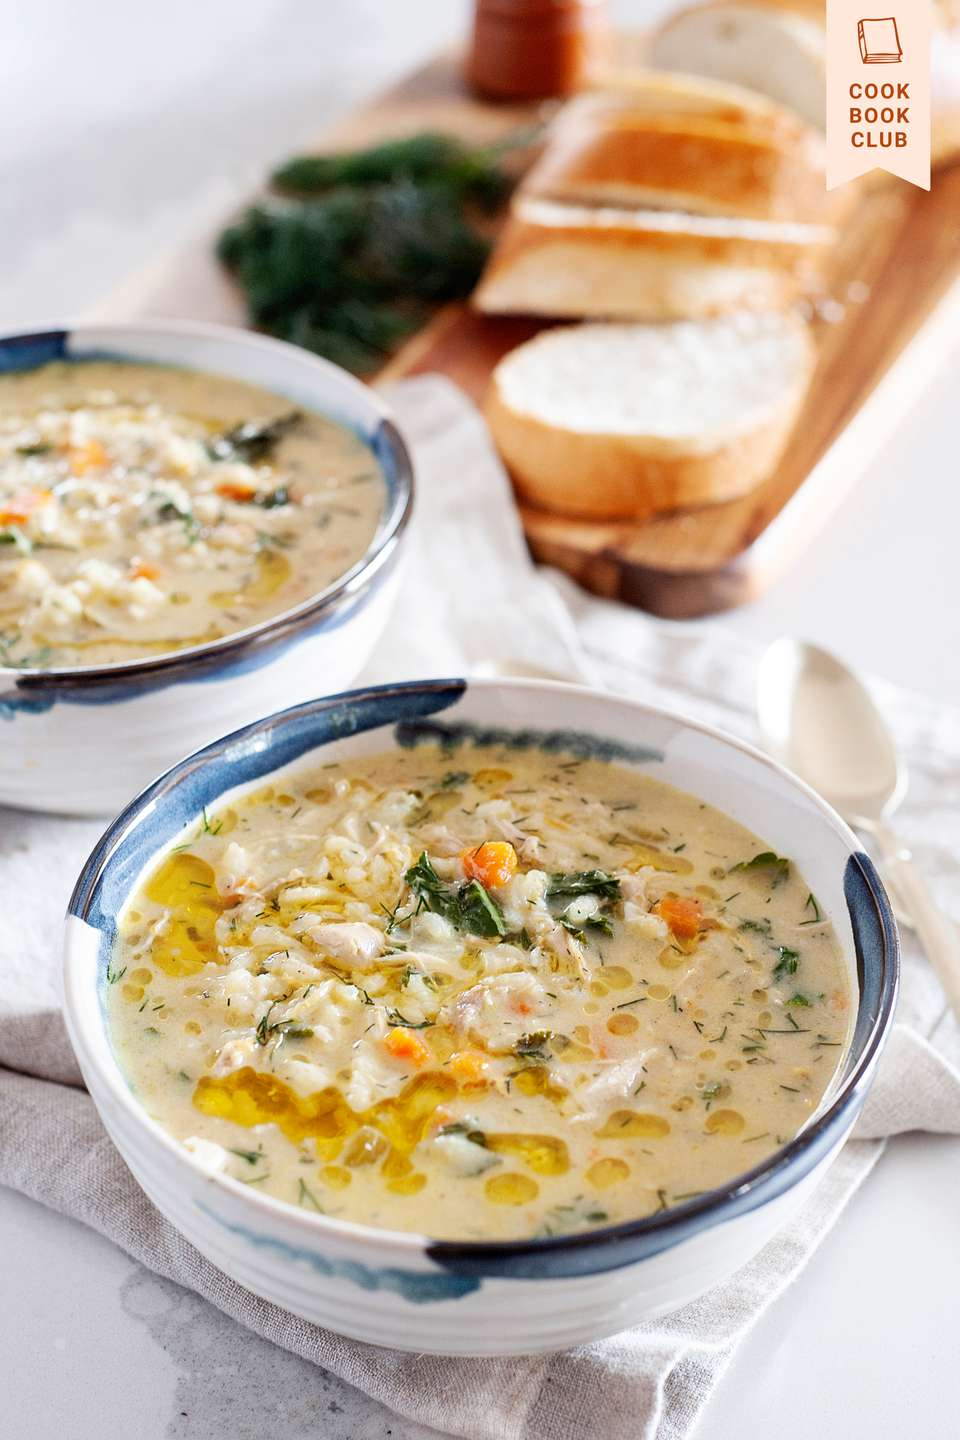 Avgolemono in a bowl with a second bowl and sliced bread behind it.